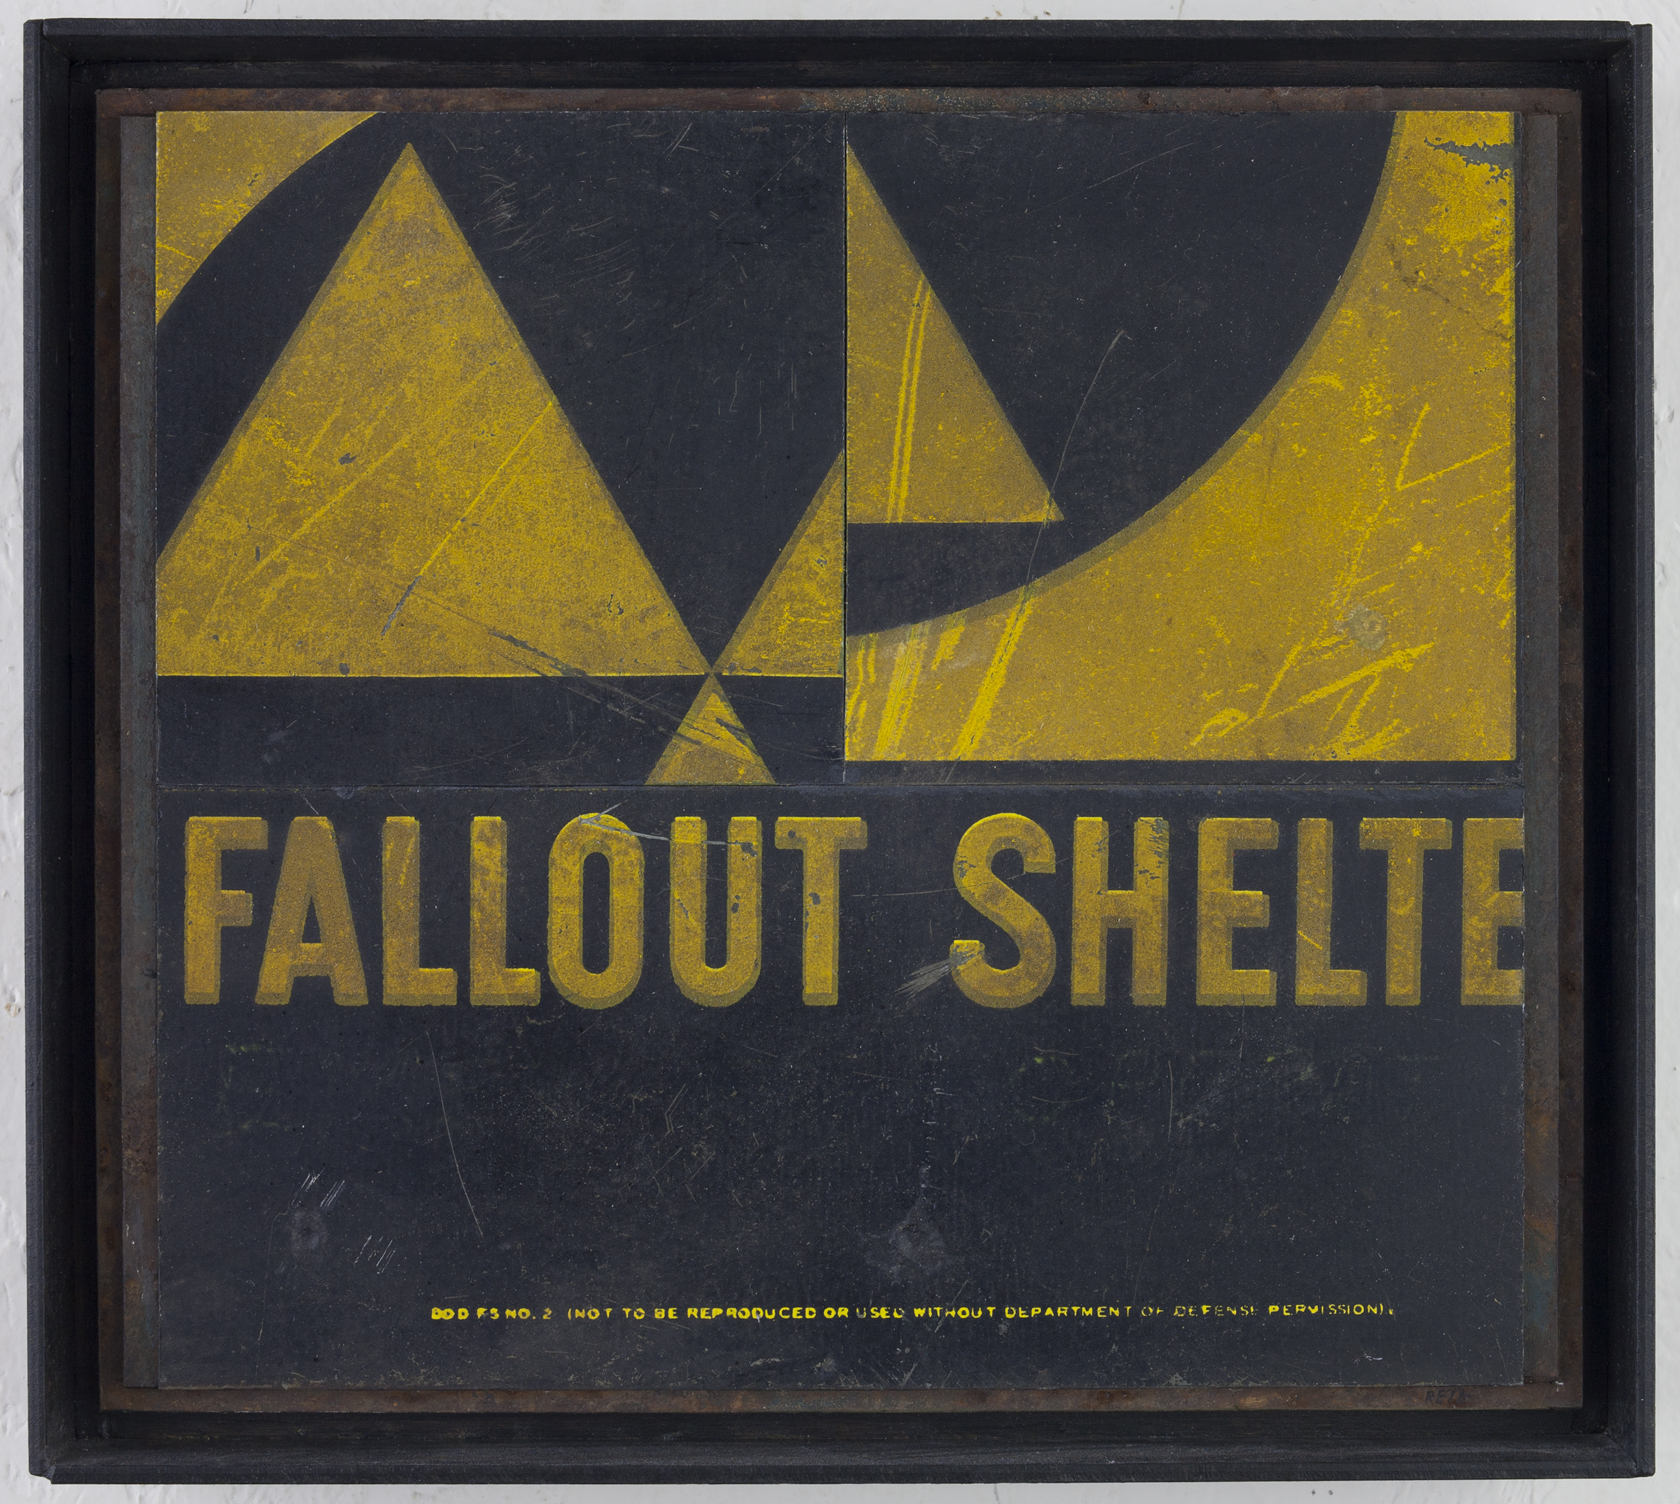 1729_Fallout_Shelter_9.5x10.5x2